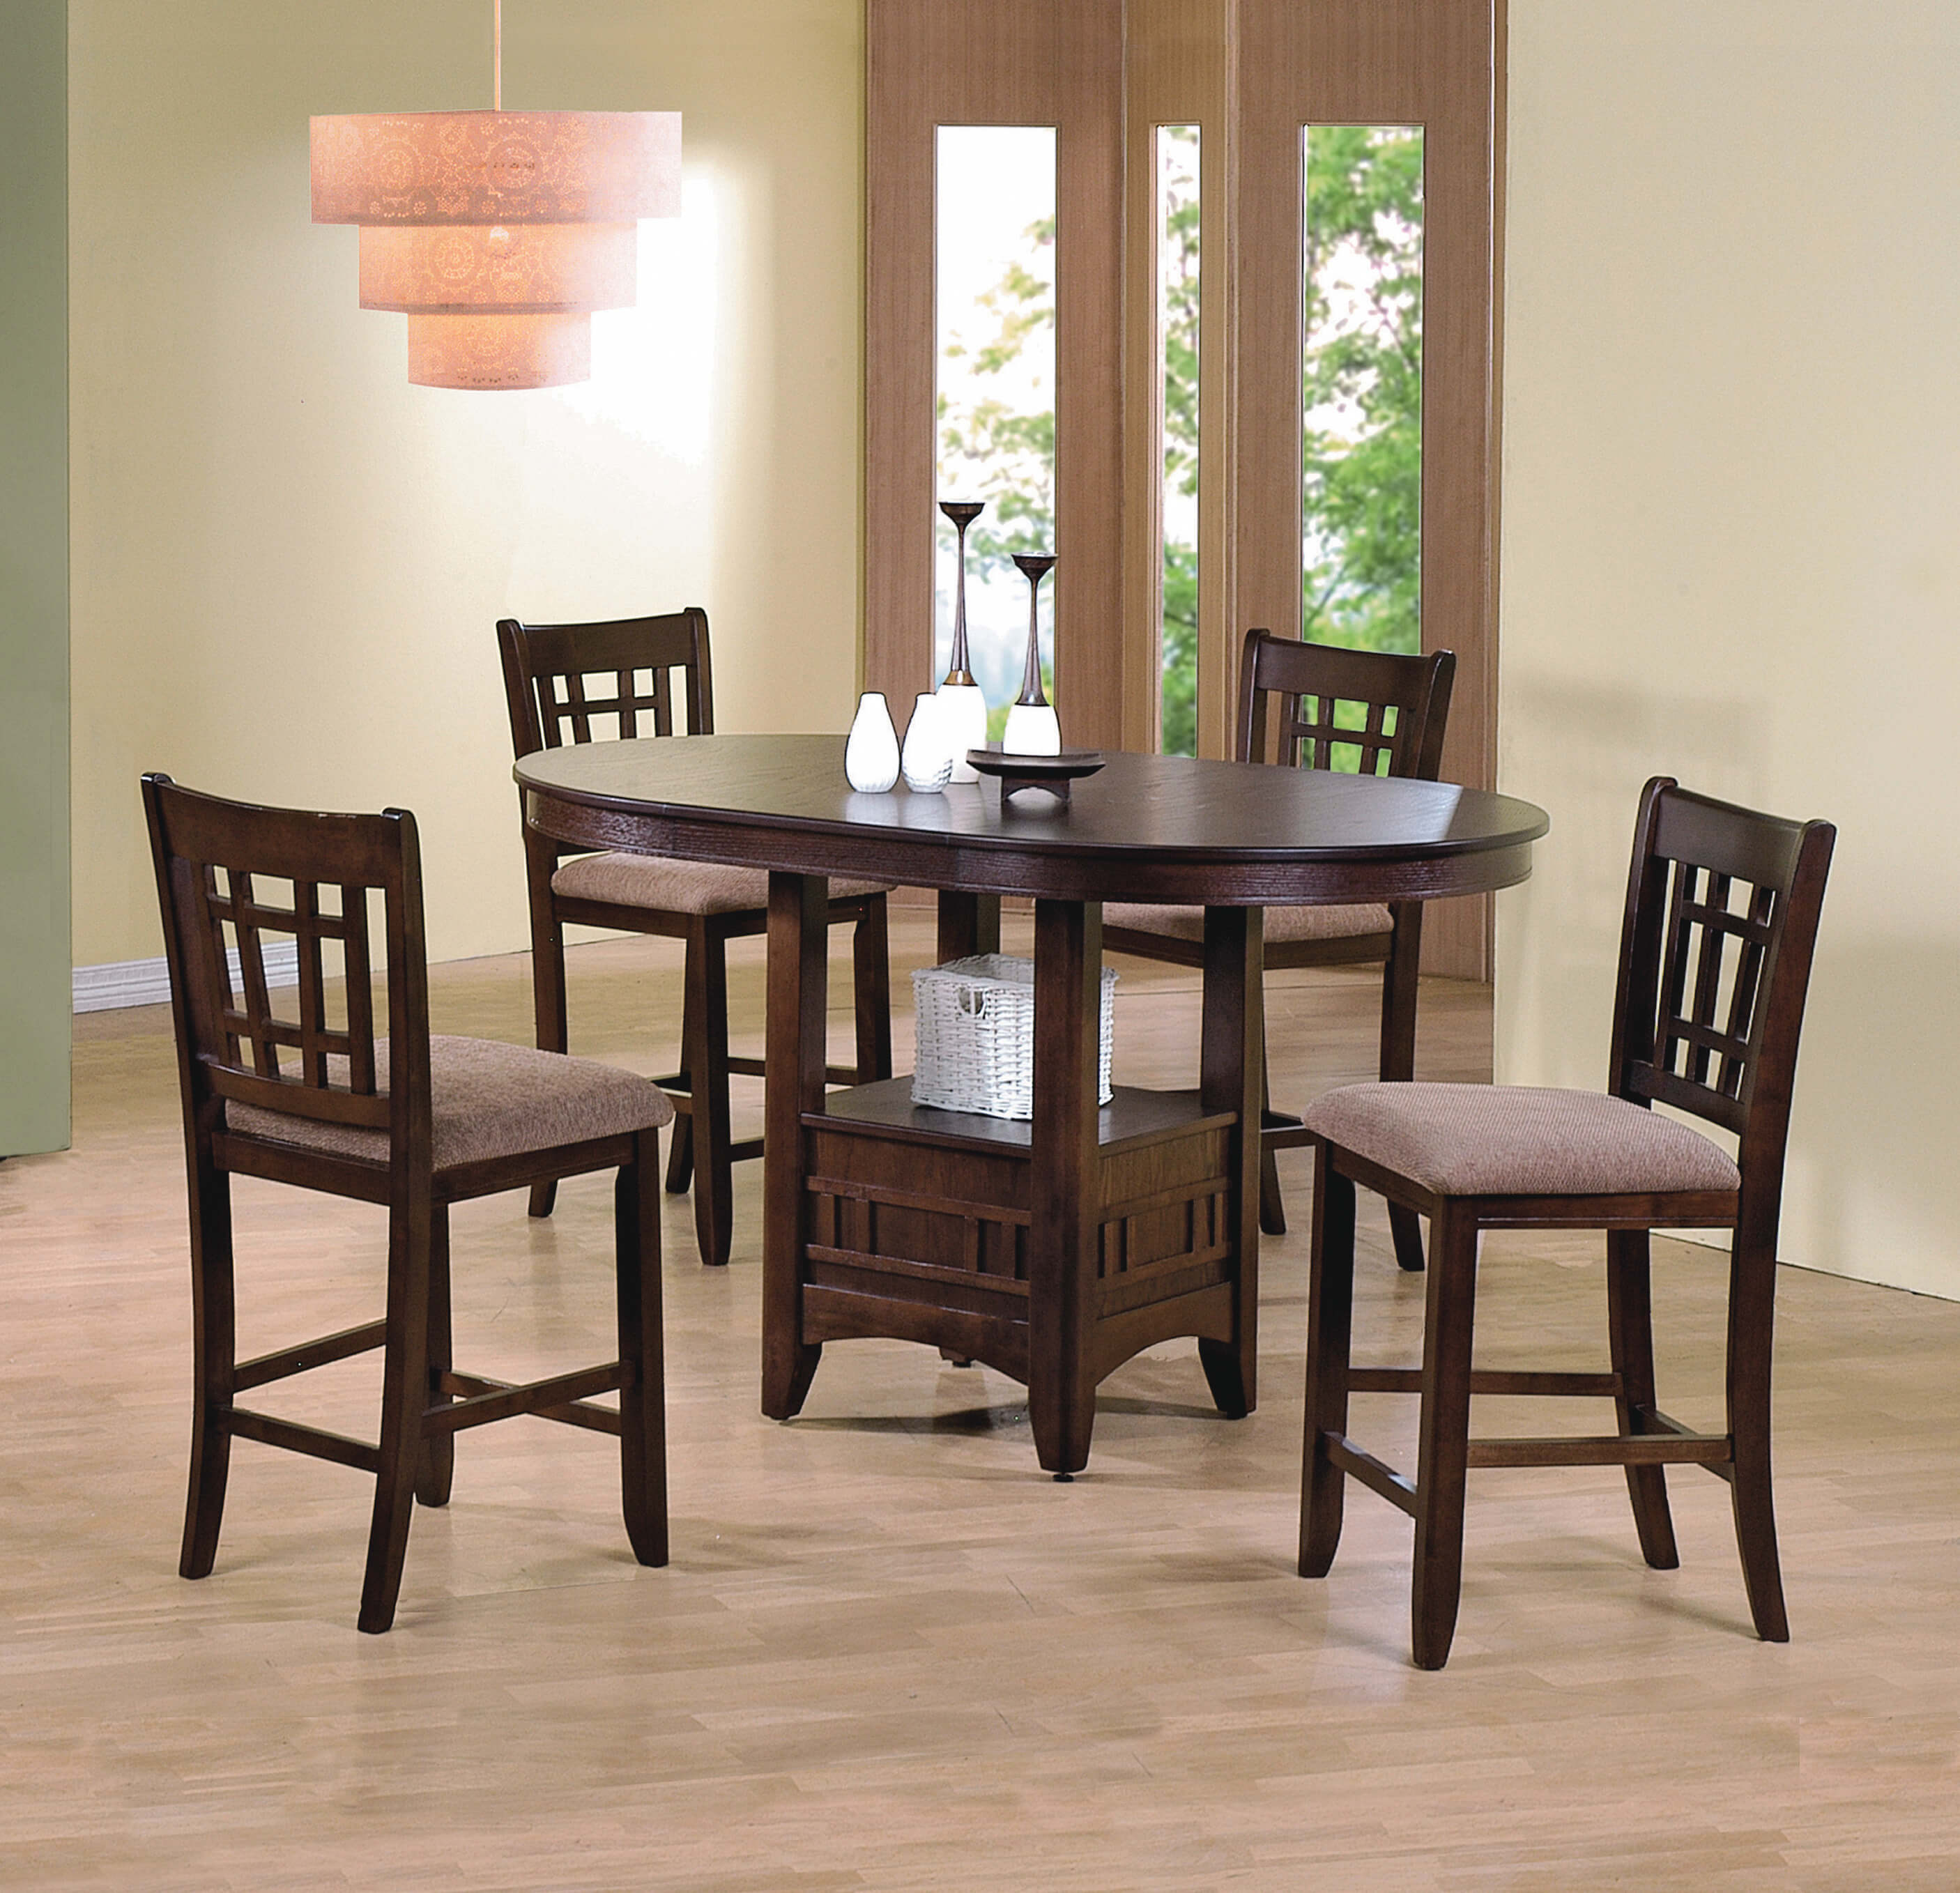 Empire Counter Height Dining Room Set Dining Room Sets